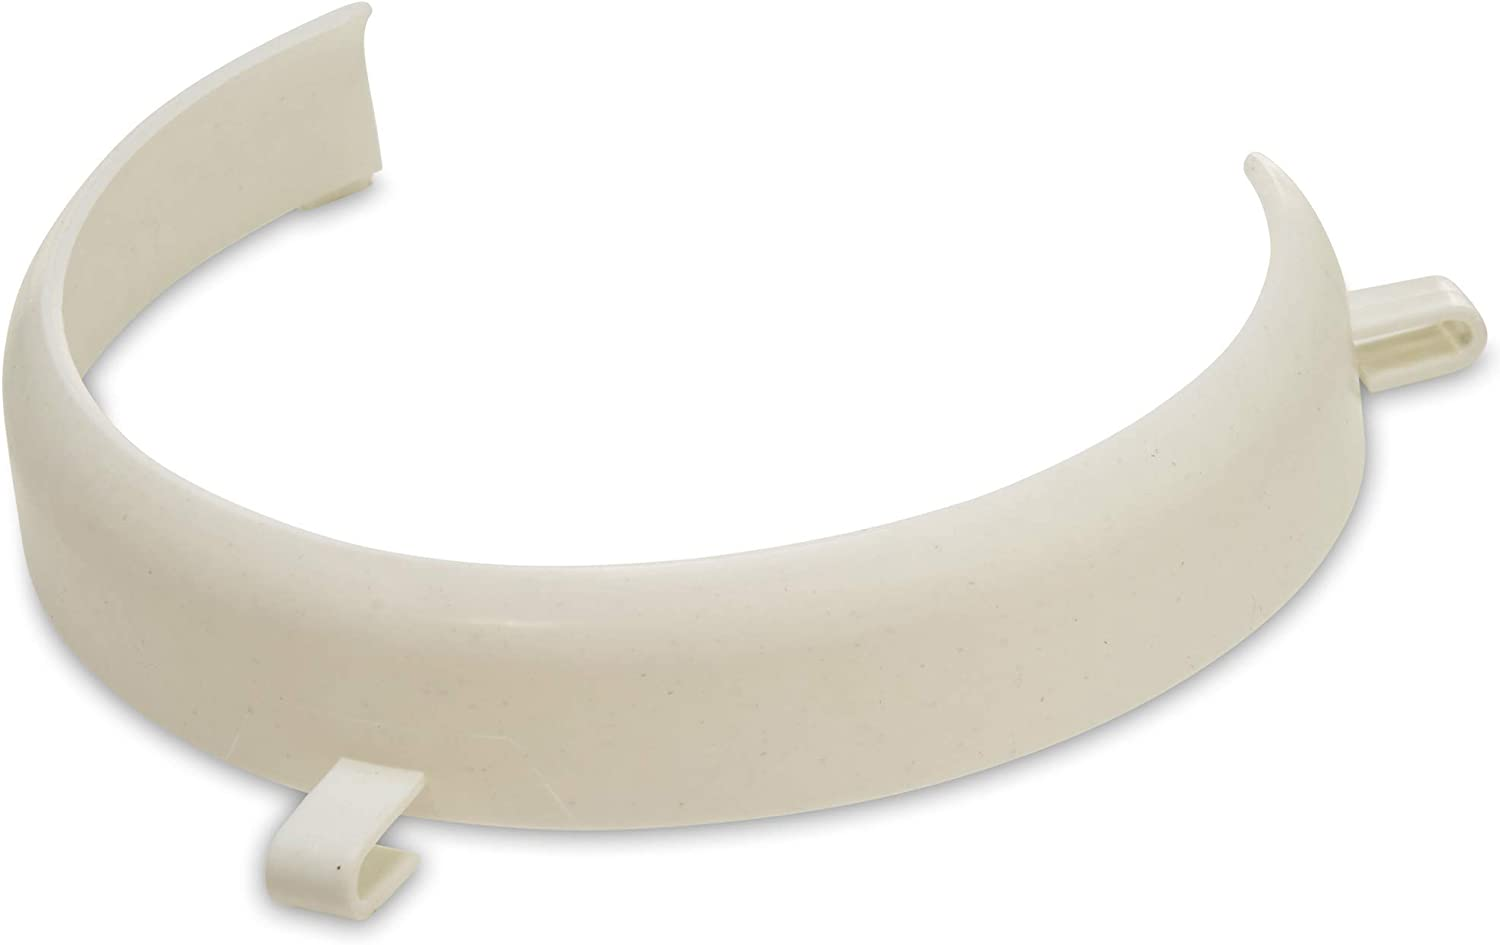 Mars Wellness White Food Plate Guard - Reusable Snap On Ring fits 7.5